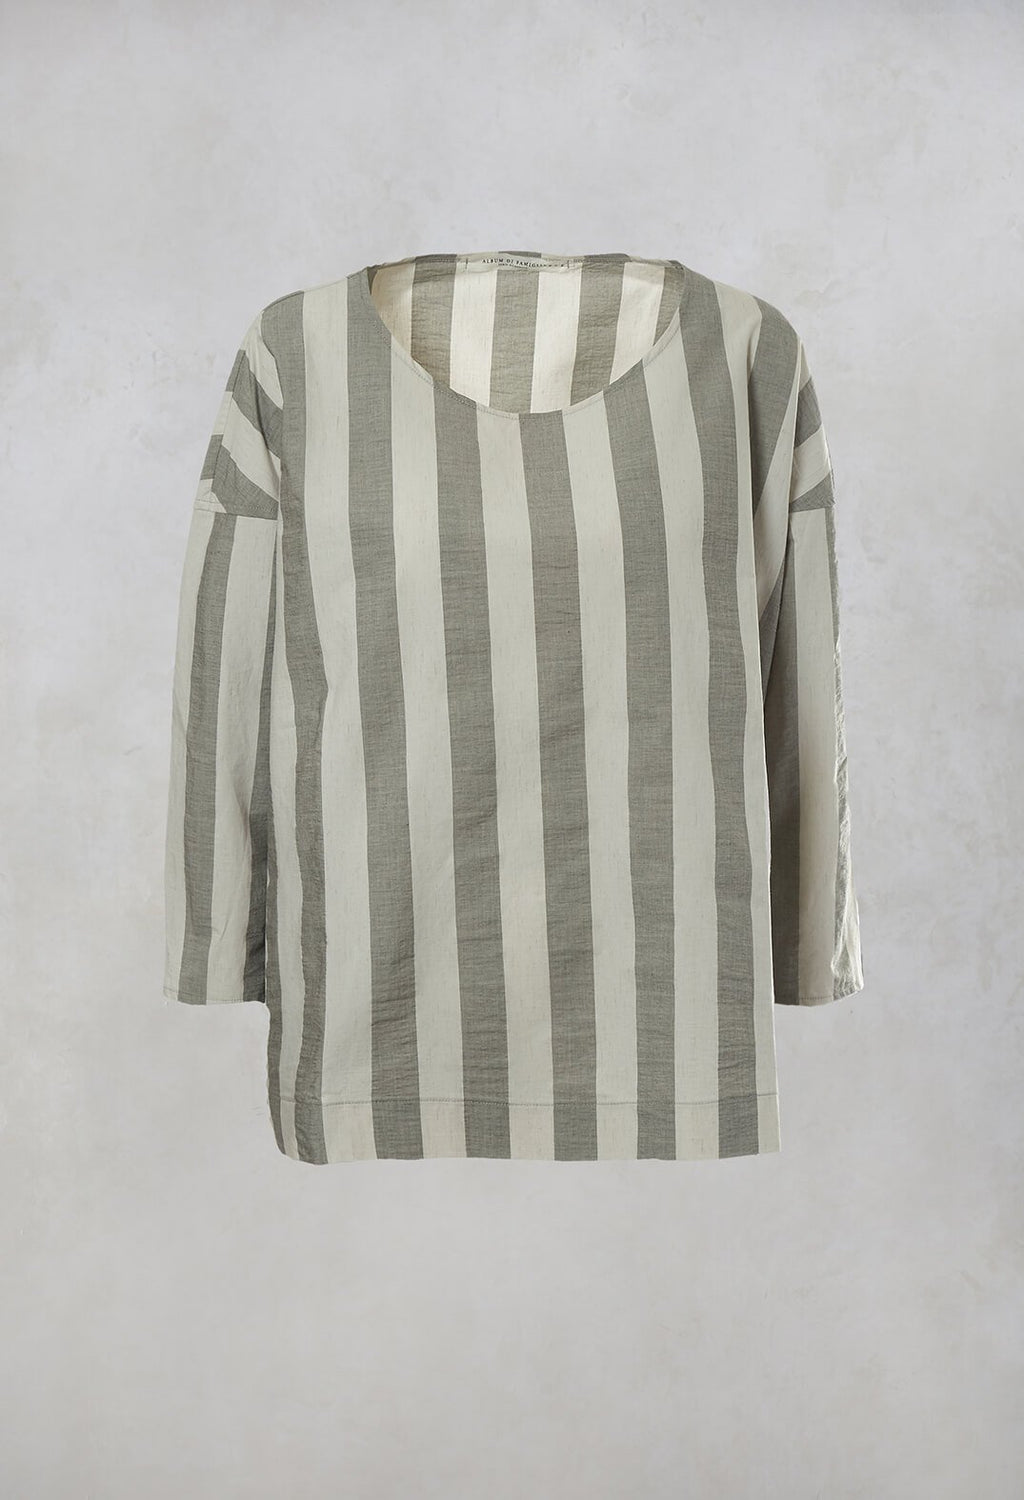 Striped T-Shirt in Light Grey